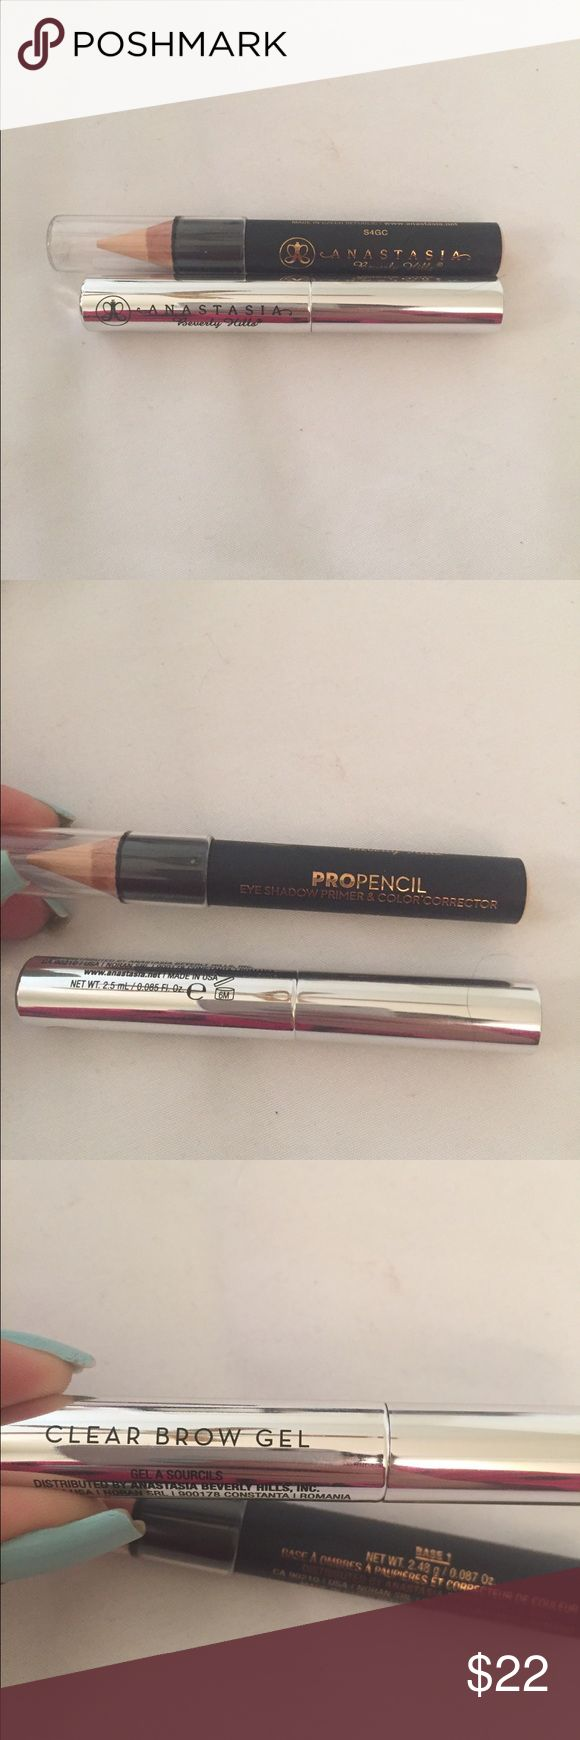 New Anastasia BeverlyHills Propencil Clear BrowGel New Anastasia Beverly Hills Pro Pencil in base 1. Use as a Eyeshadow base, color corrector and brow bone highlighter. Comes with clear brow gel. New without box. Anastasia Beverly Hills Makeup